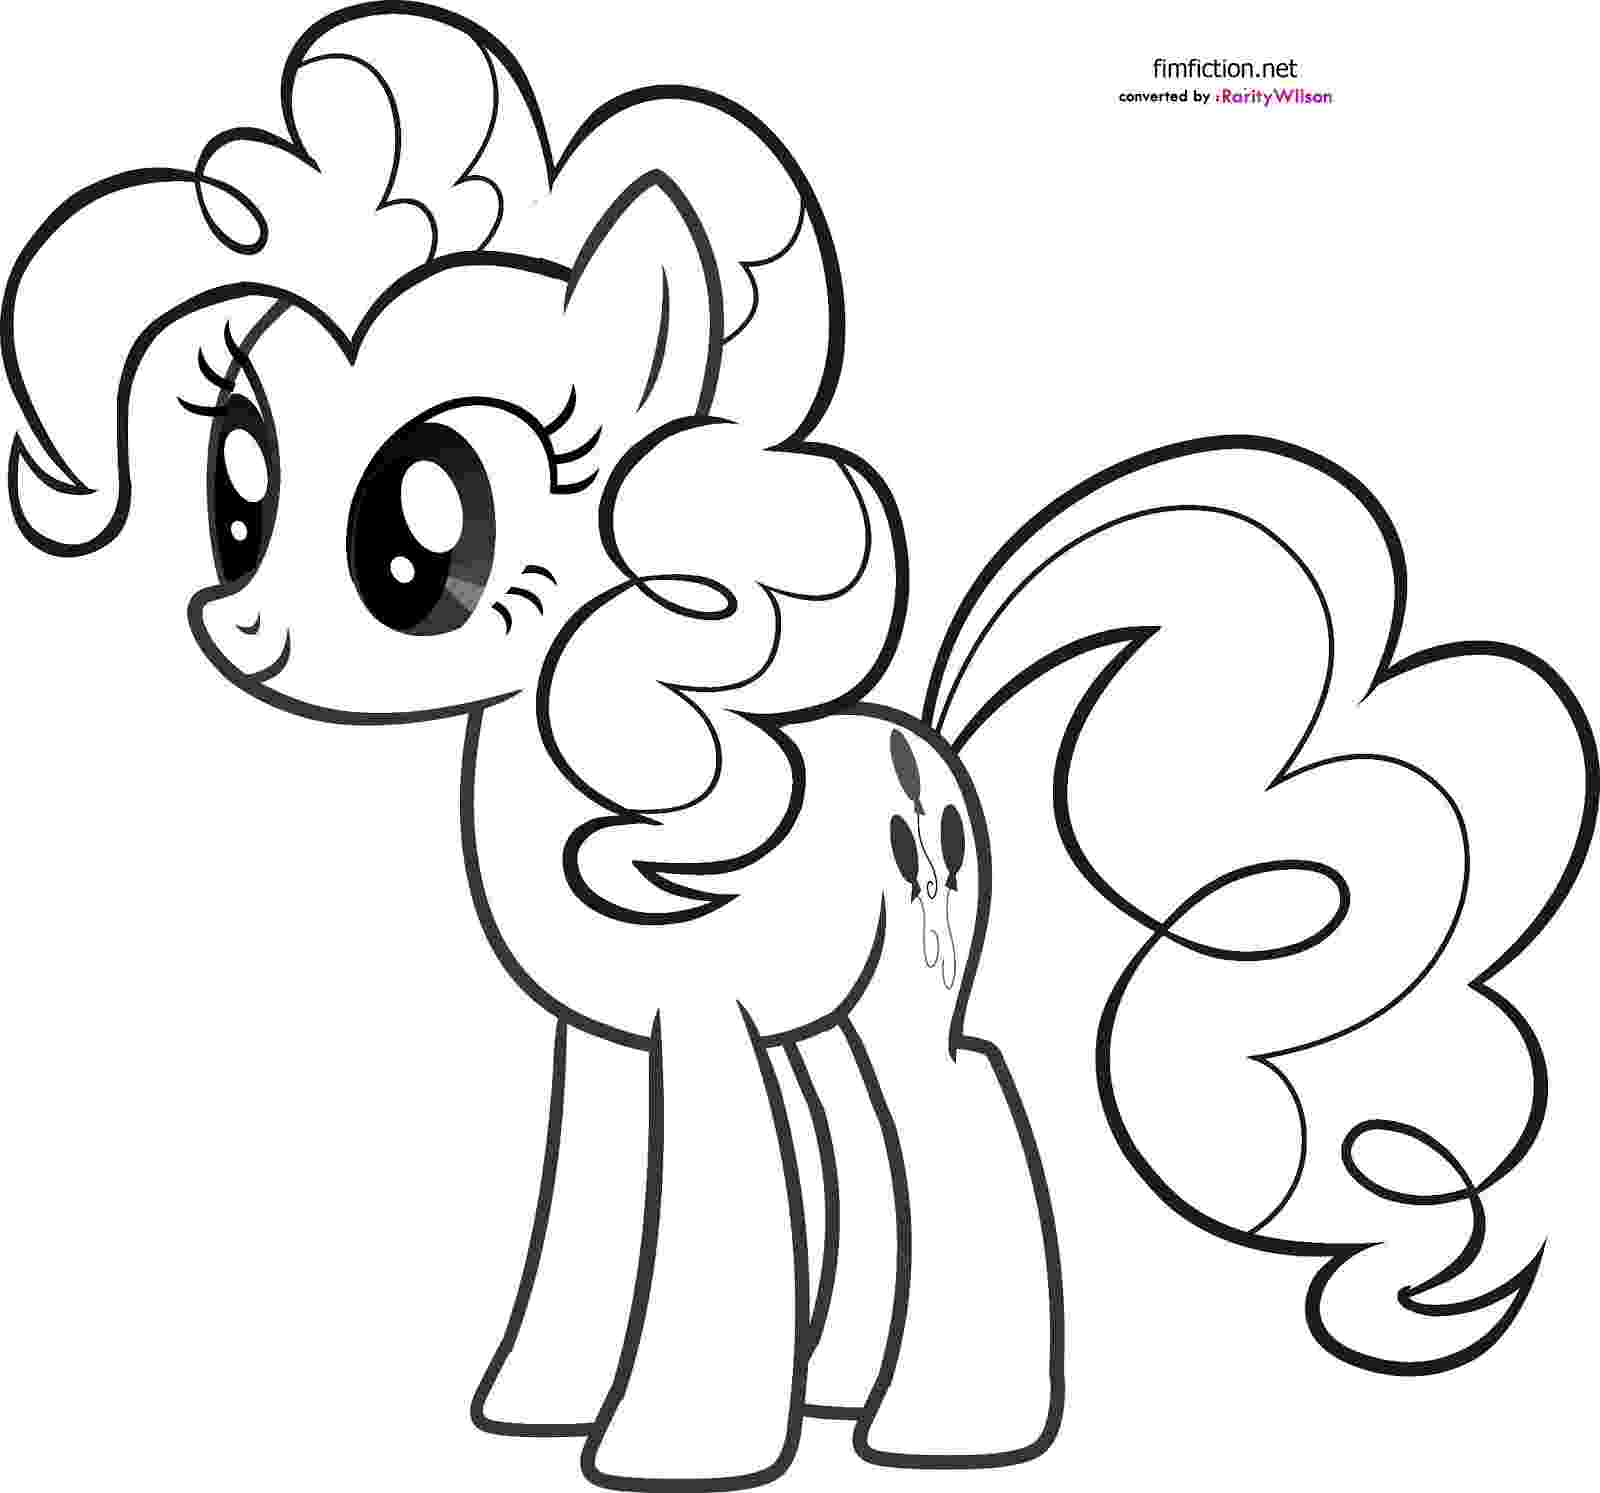 my little pony coloring pages pinkie pie my little pony pinkie pie coloring pages pinkie pages coloring little my pony pie